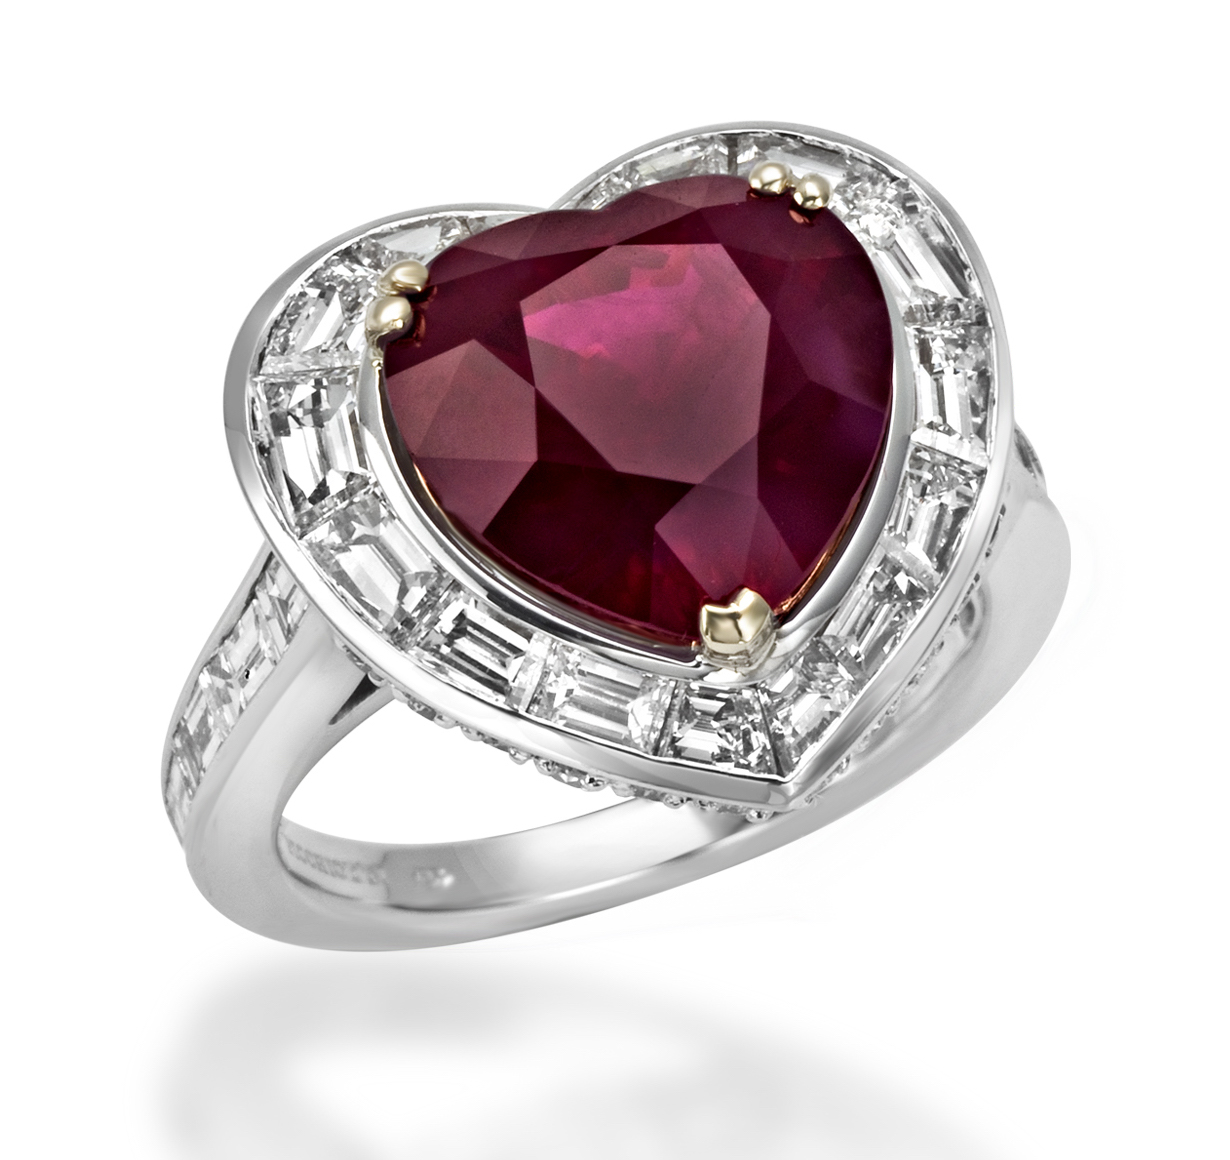 Picchiotti ruby heart ring | JCK On Your Market